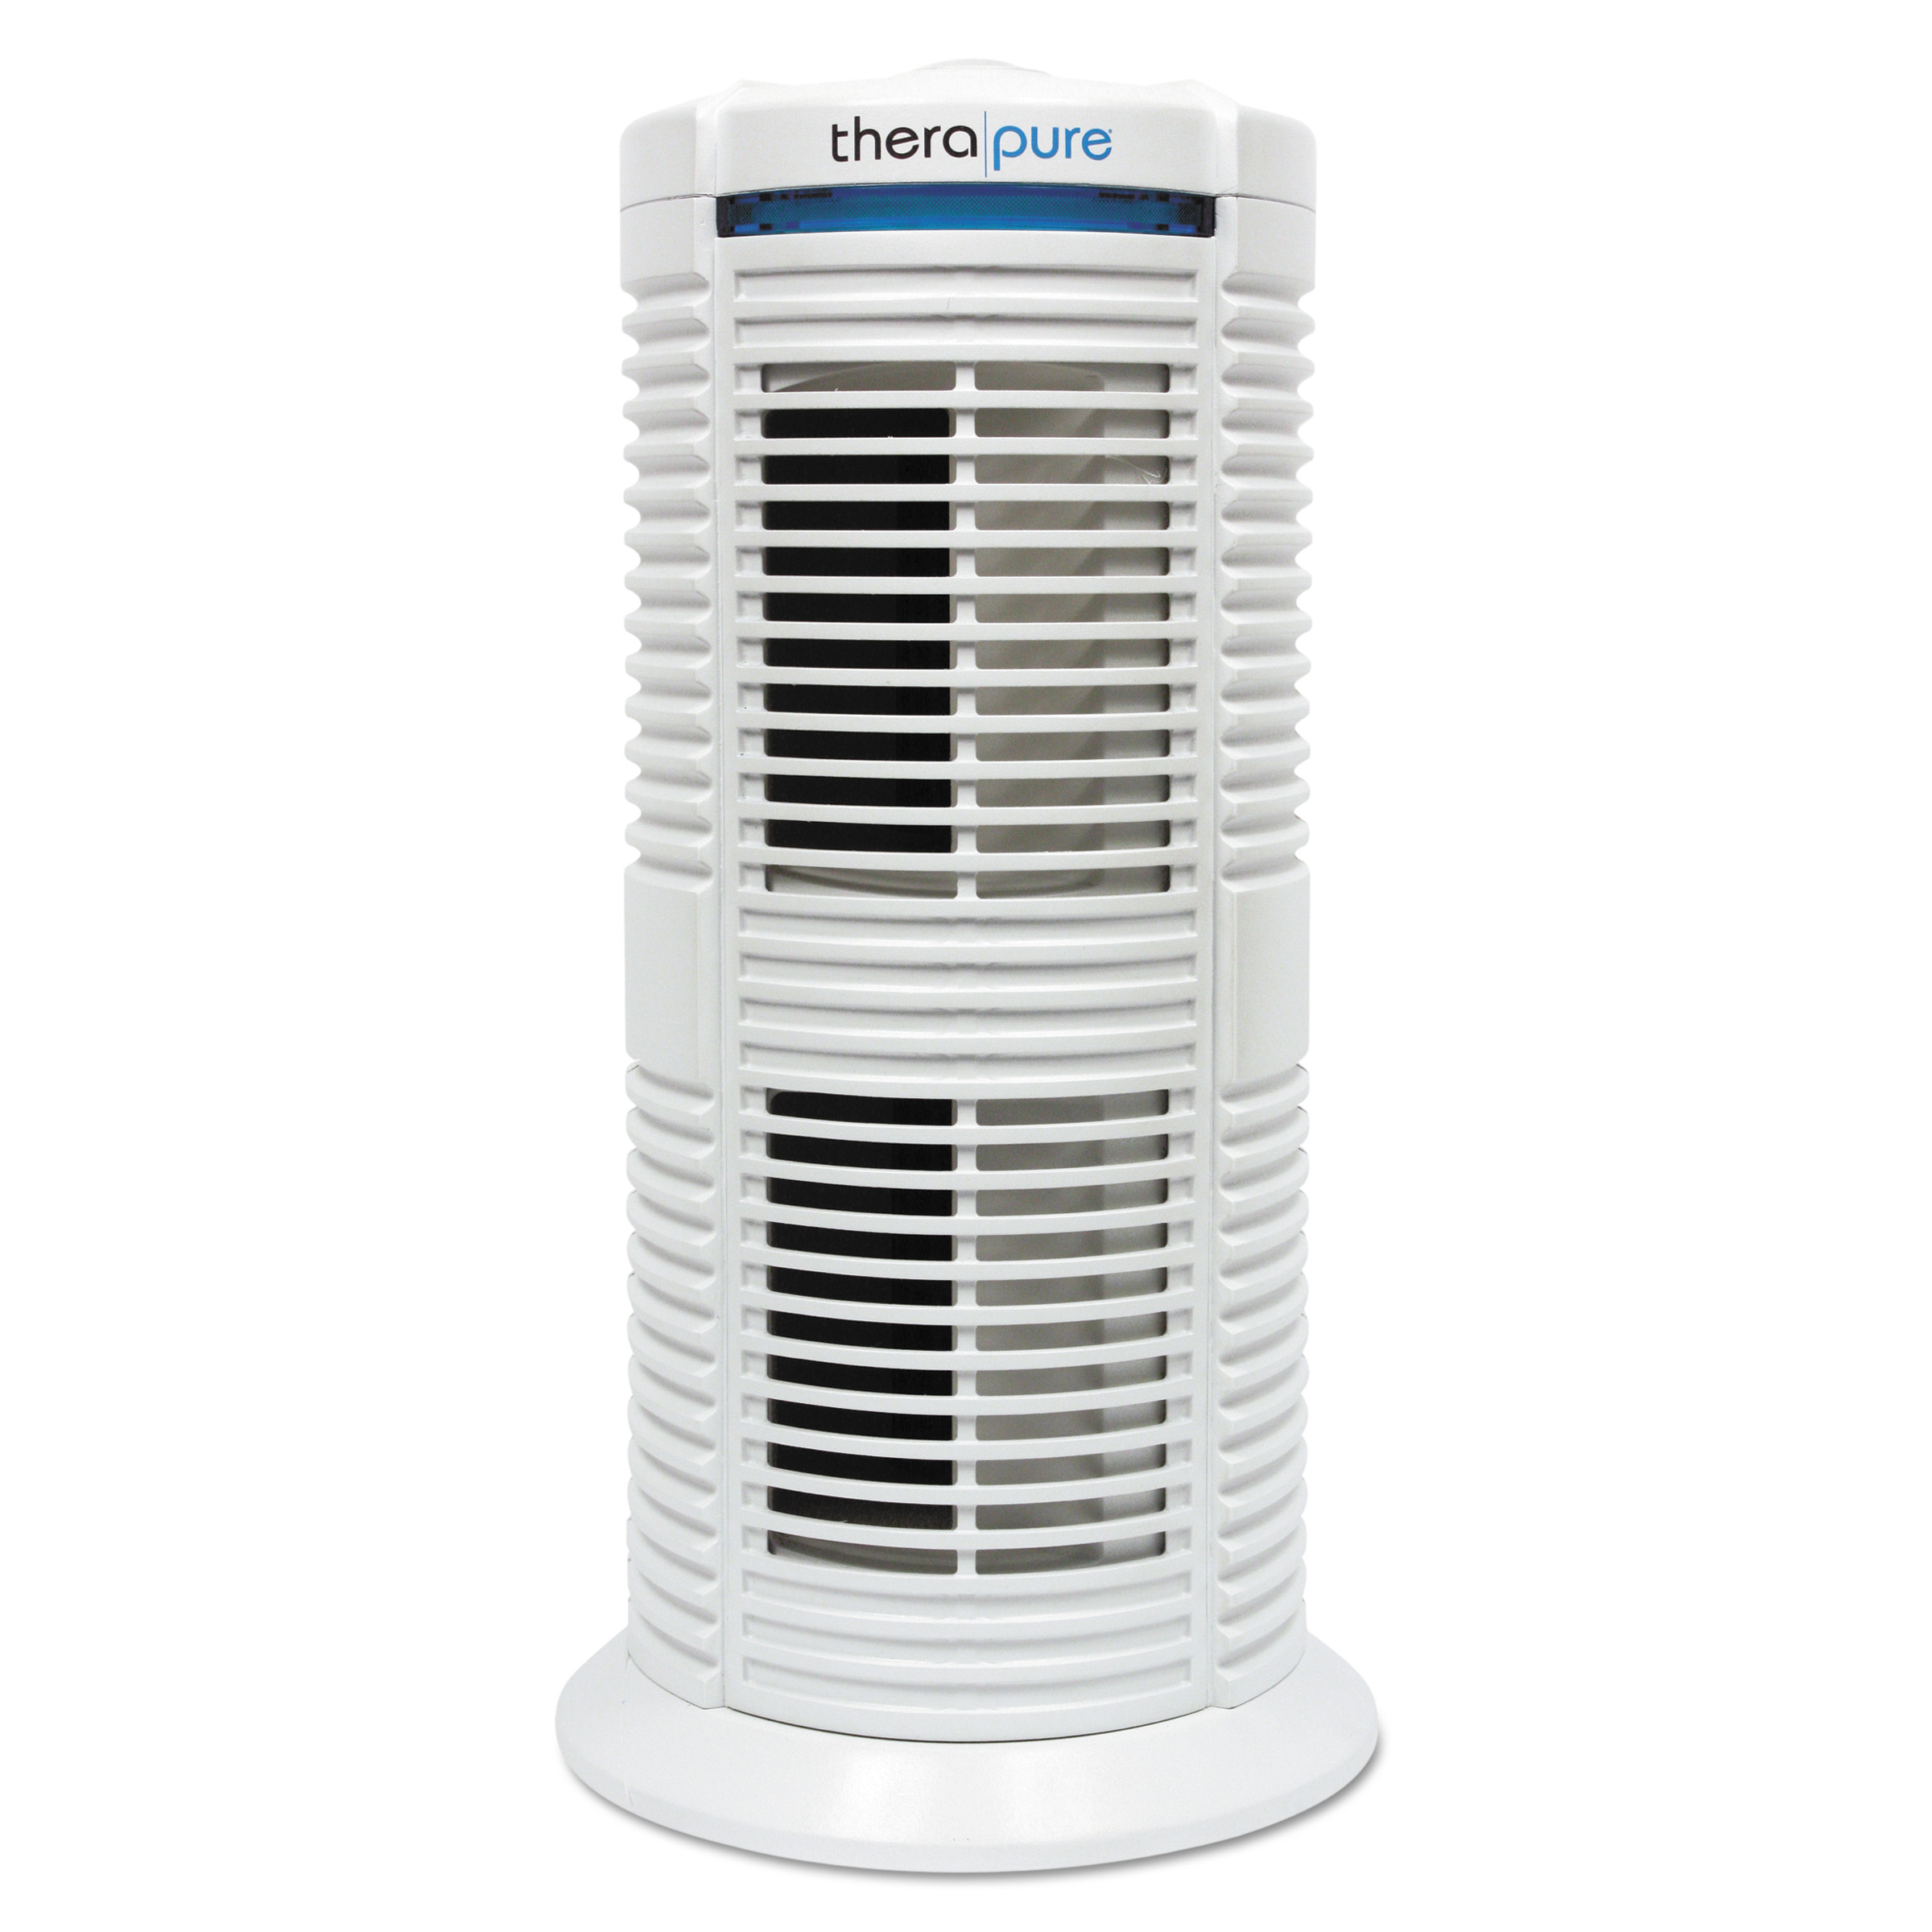 Envion Therapure 220M UV Germicidal, HEPA Style Air Purifier, 3-Speed, White